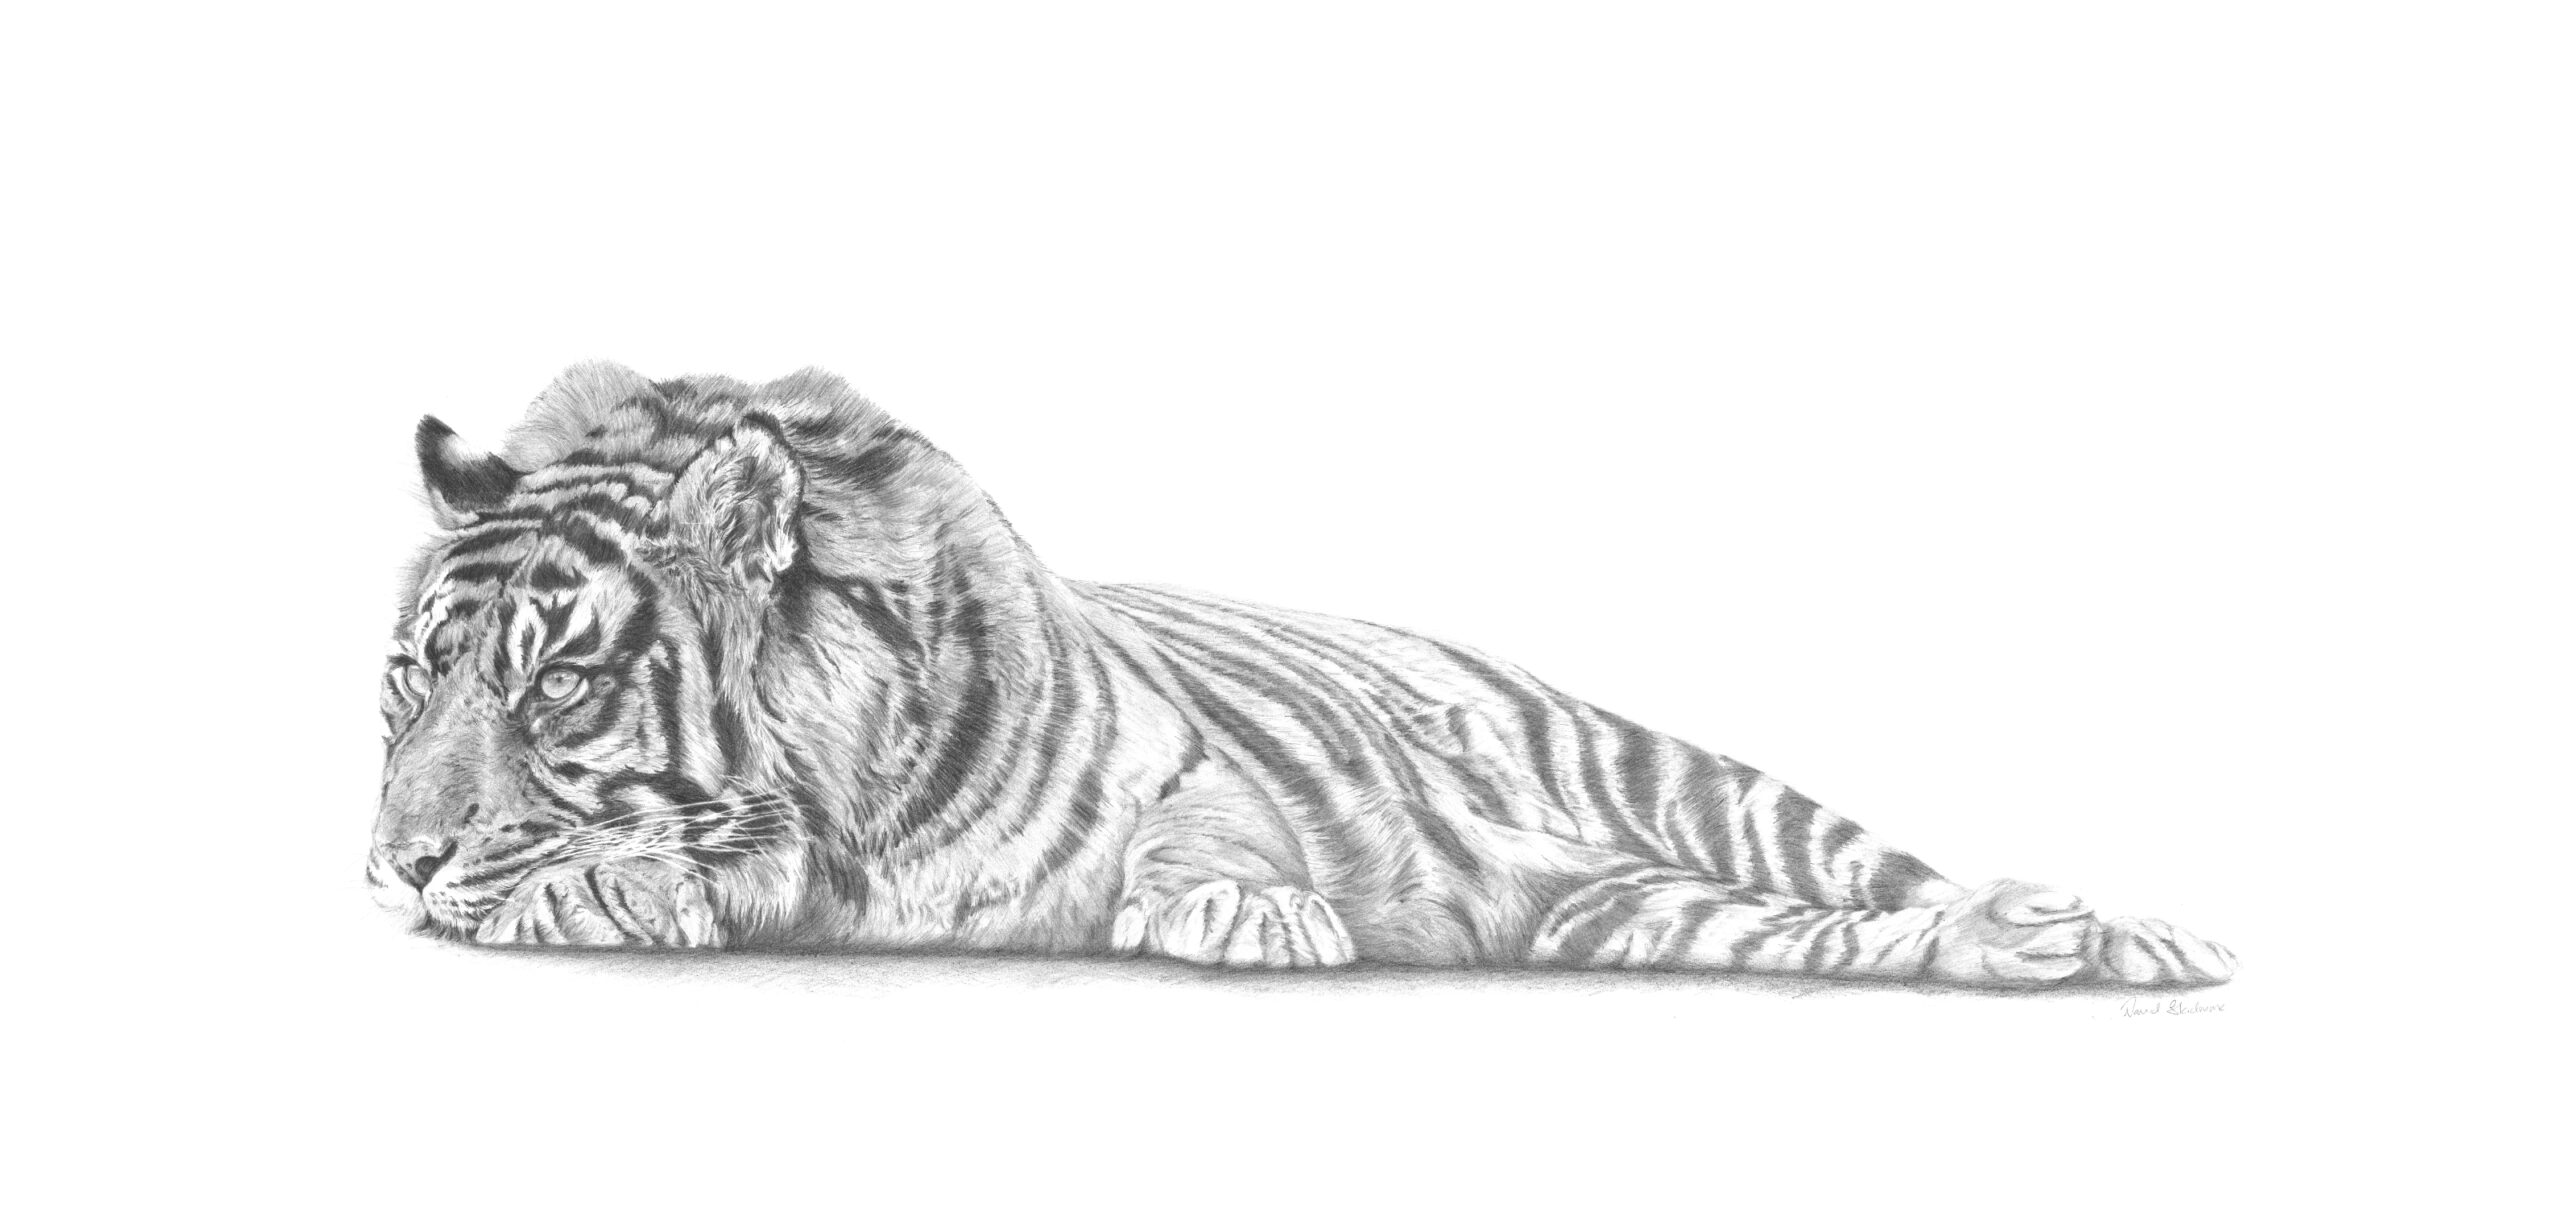 Arresting Tiger By David Skidmore – 98 x 43cm - graphite pencil on Fabriano Artistico hot press paper - £599